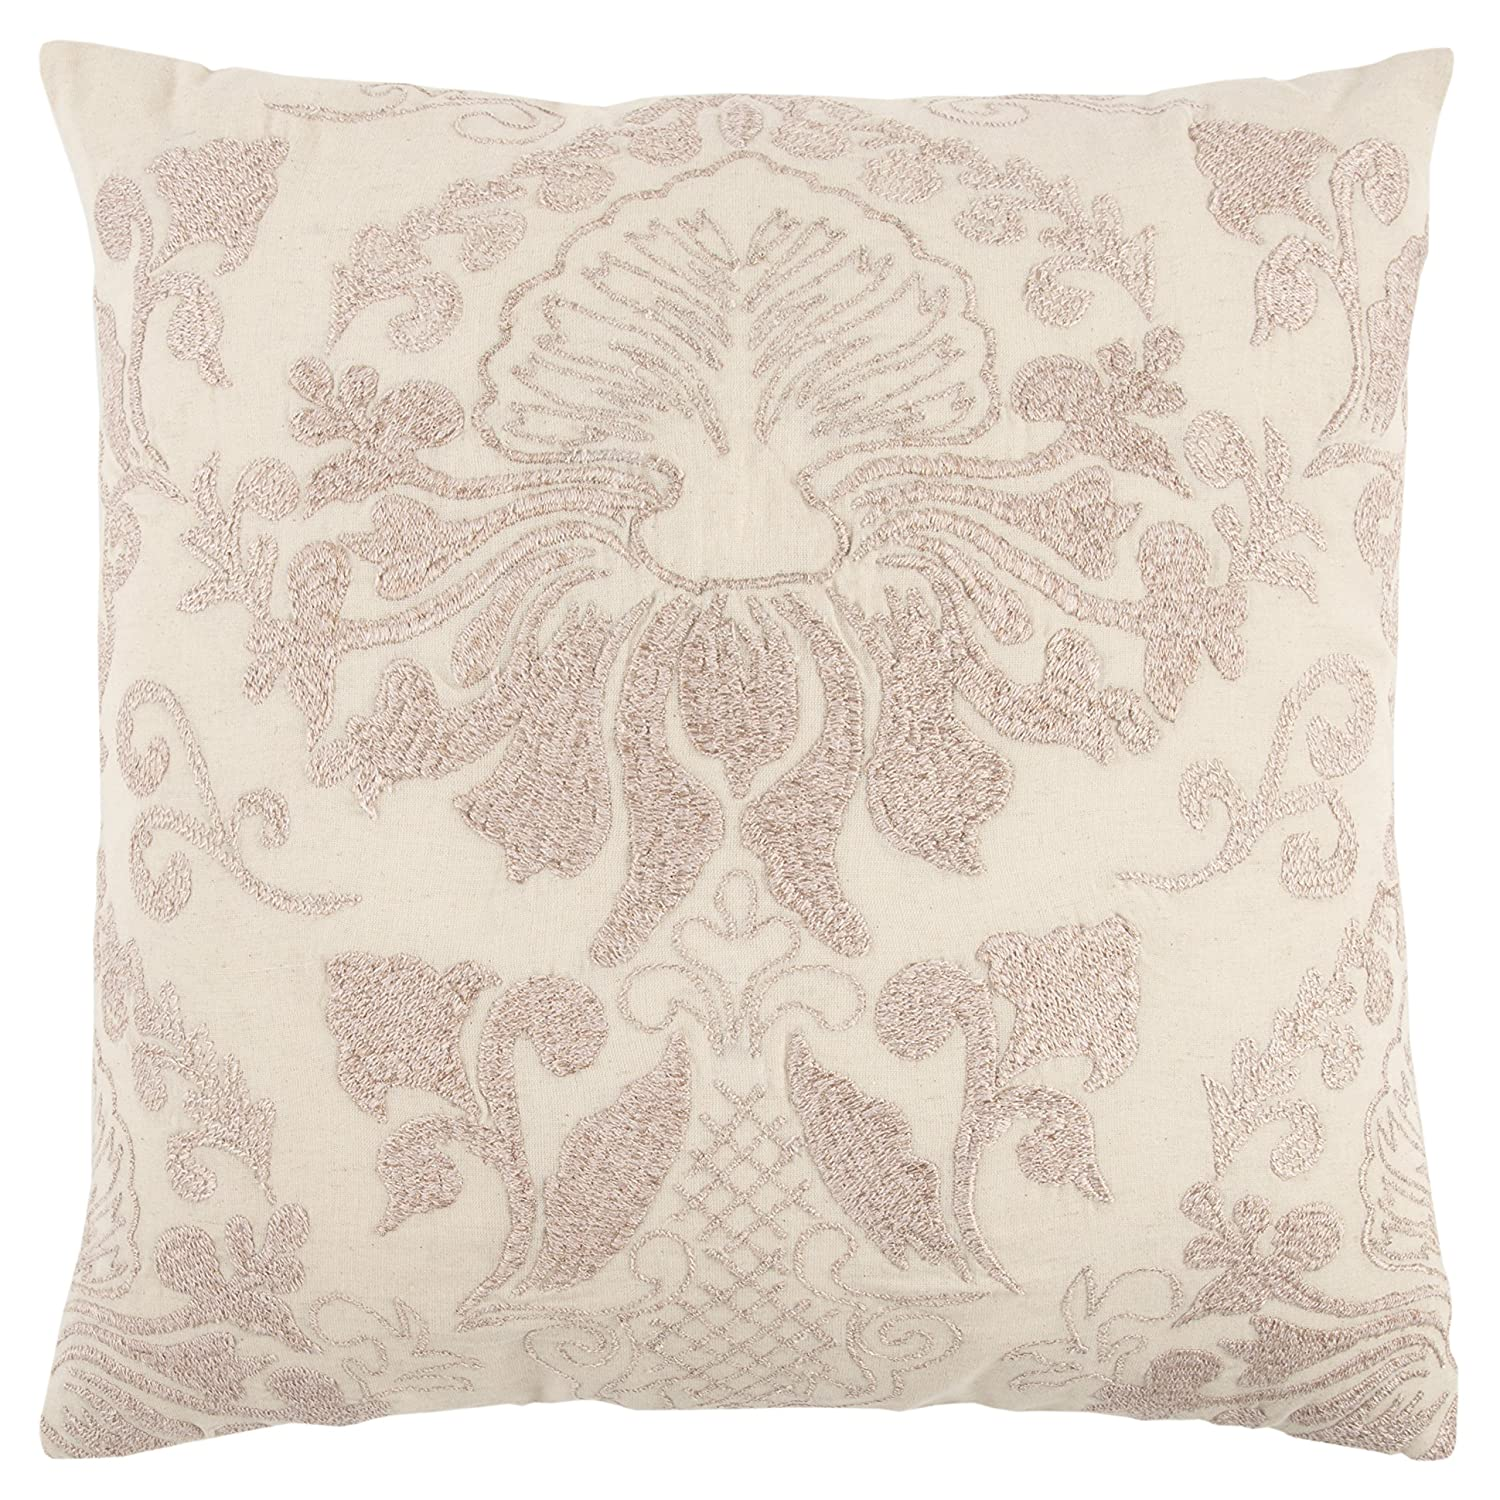 Rizzy Home Throw Pillow 20' x 20' Pink/Ivory